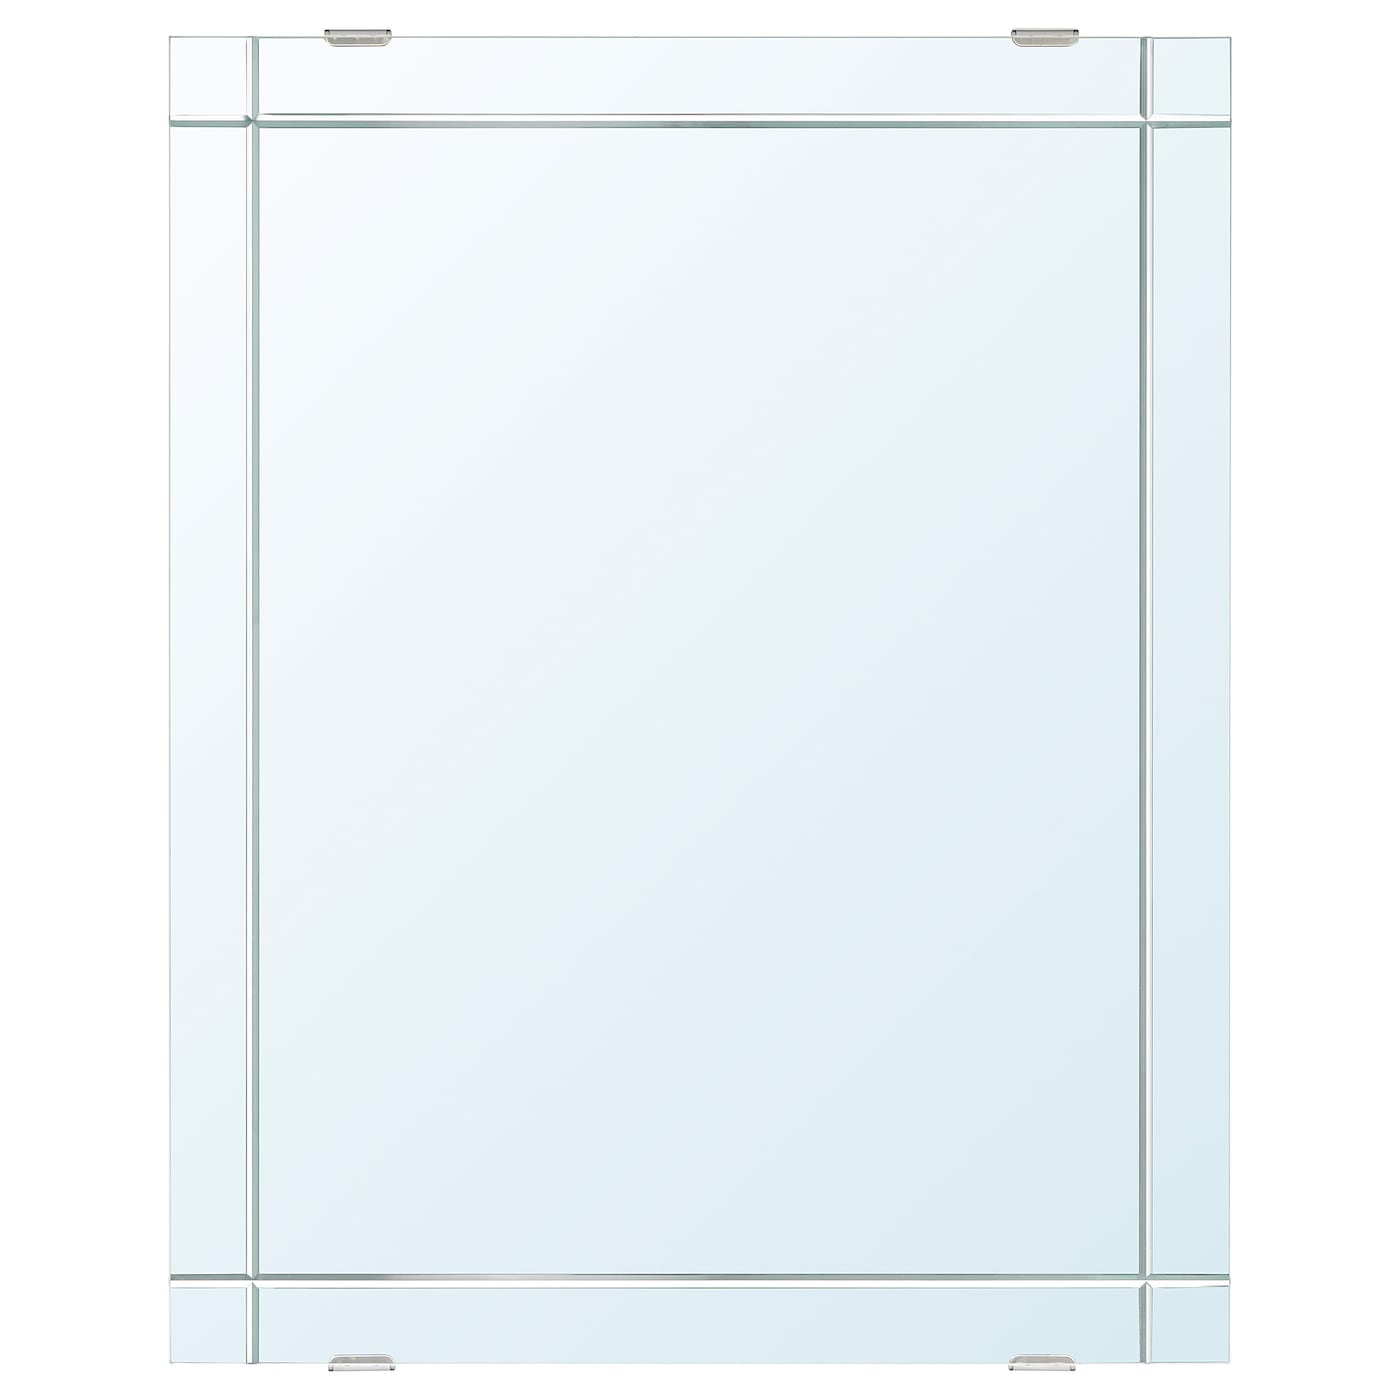 IKEA EIDSÅ mirror Suitable for use in most rooms, and tested and approved for bathroom use.